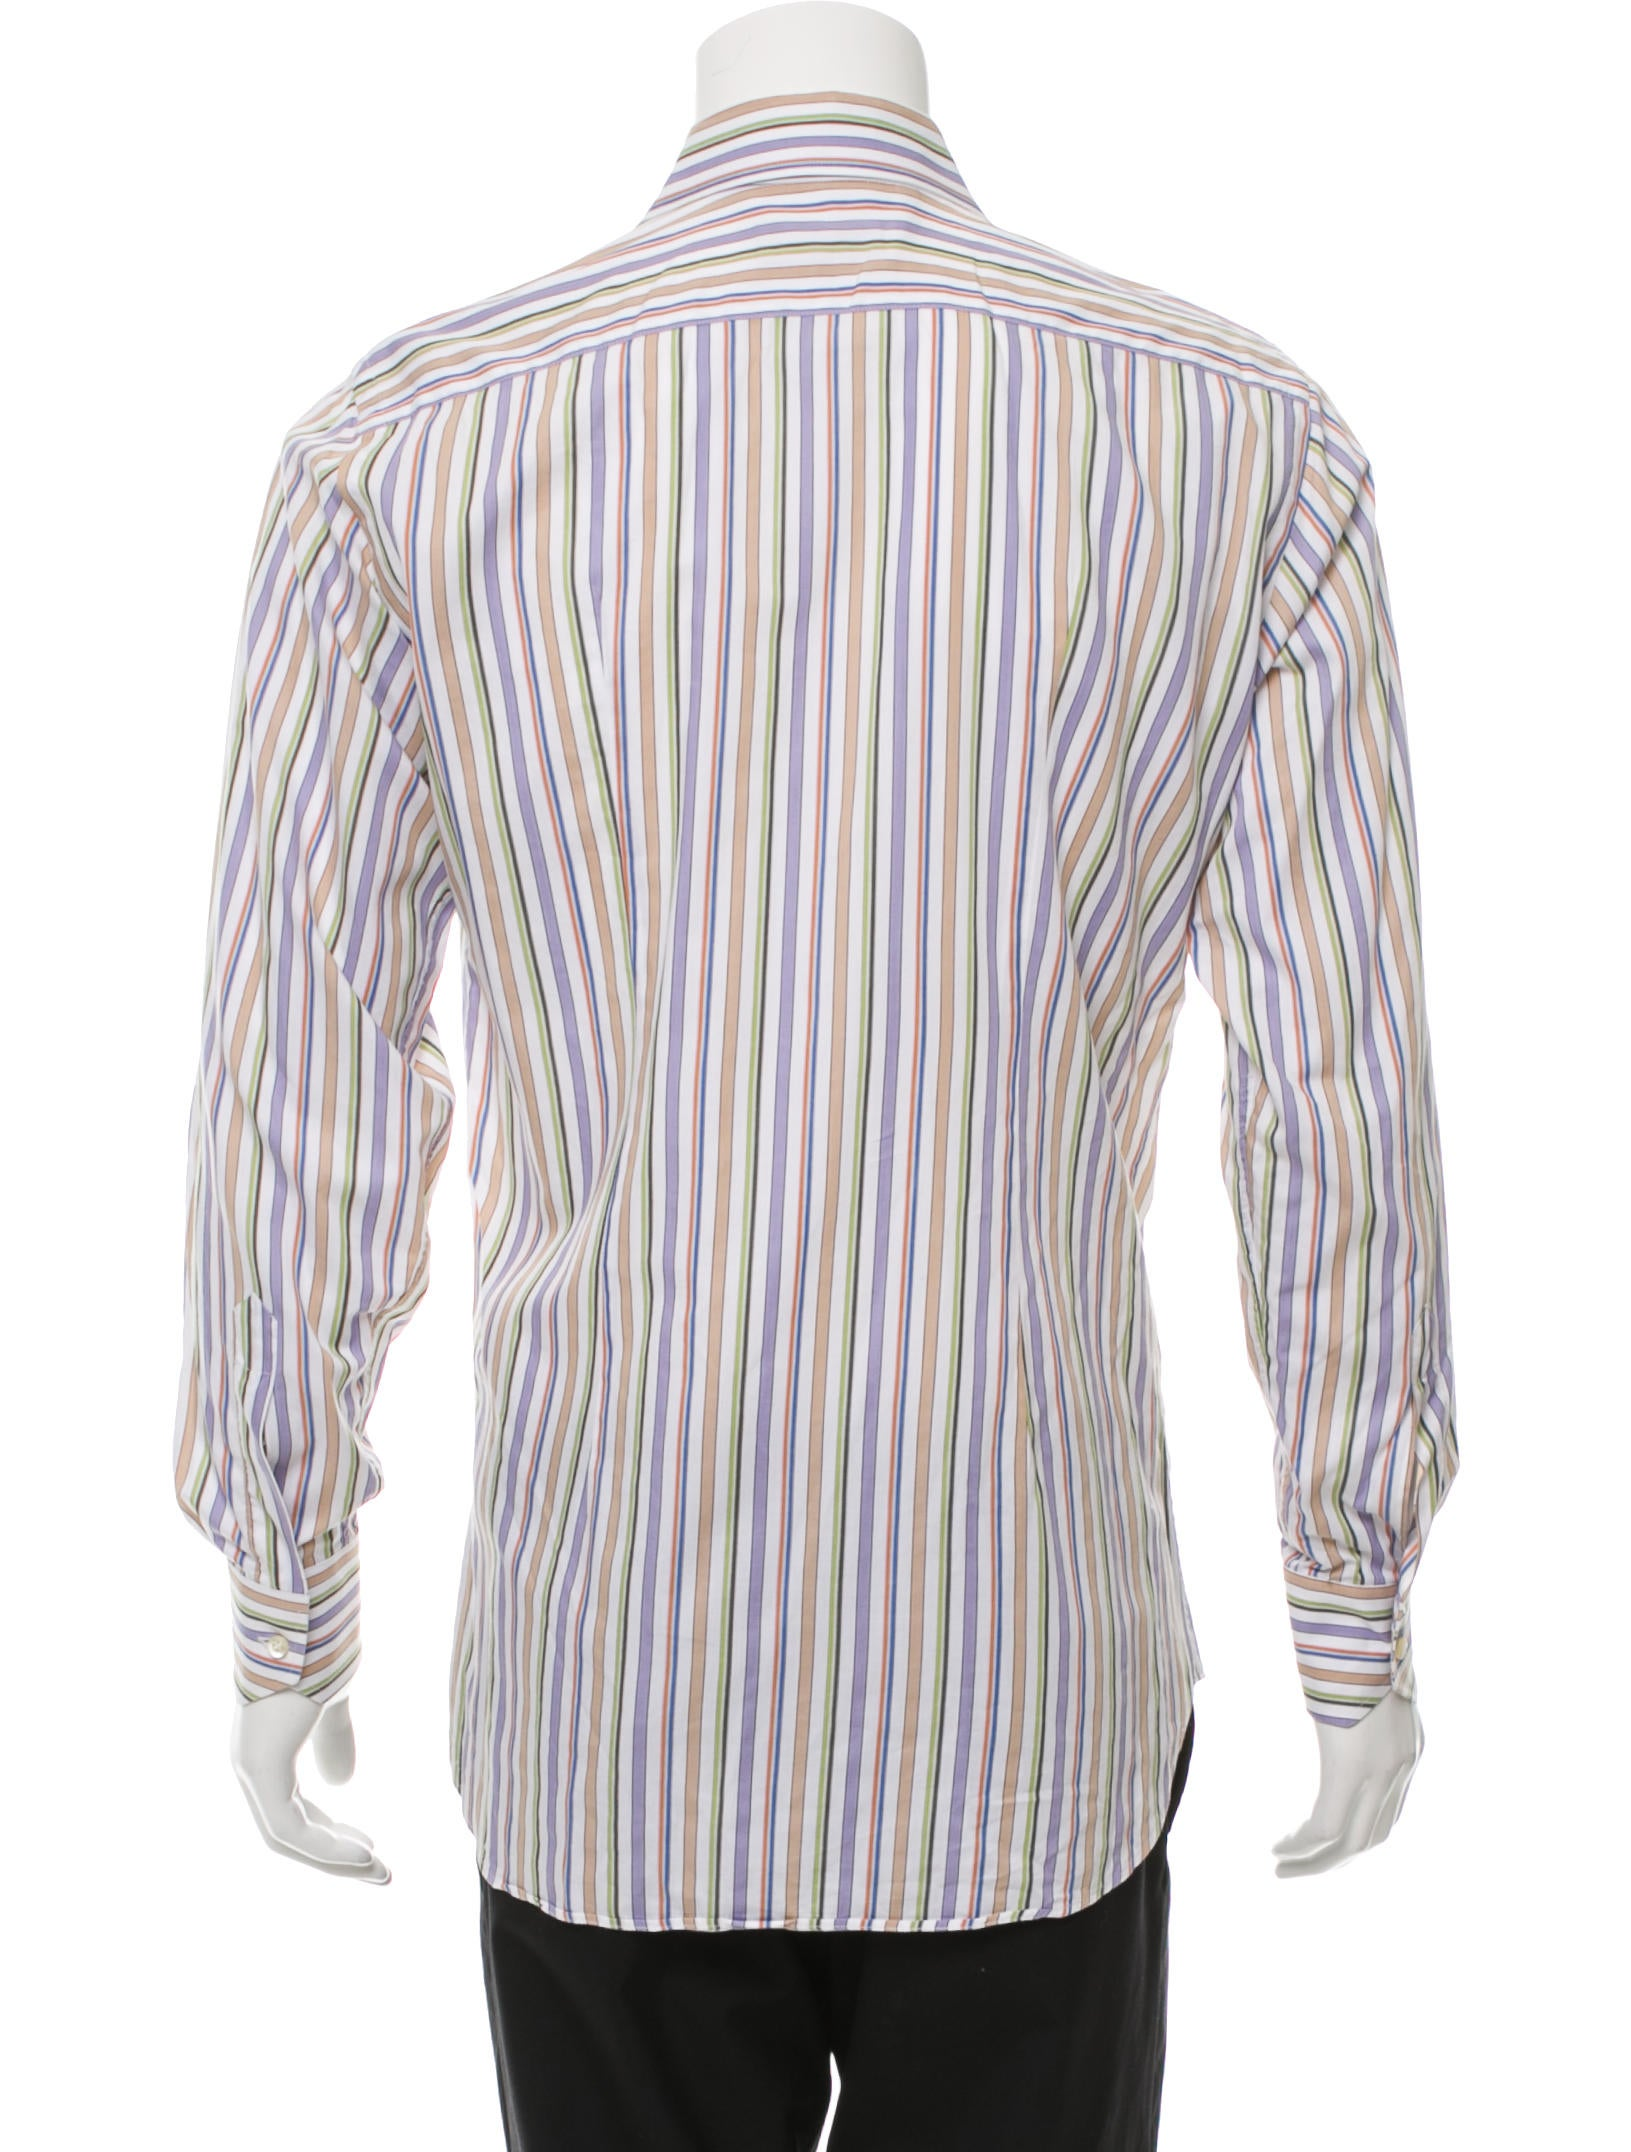 Etro striped button up shirt clothing etr46839 the for Striped button up shirt mens